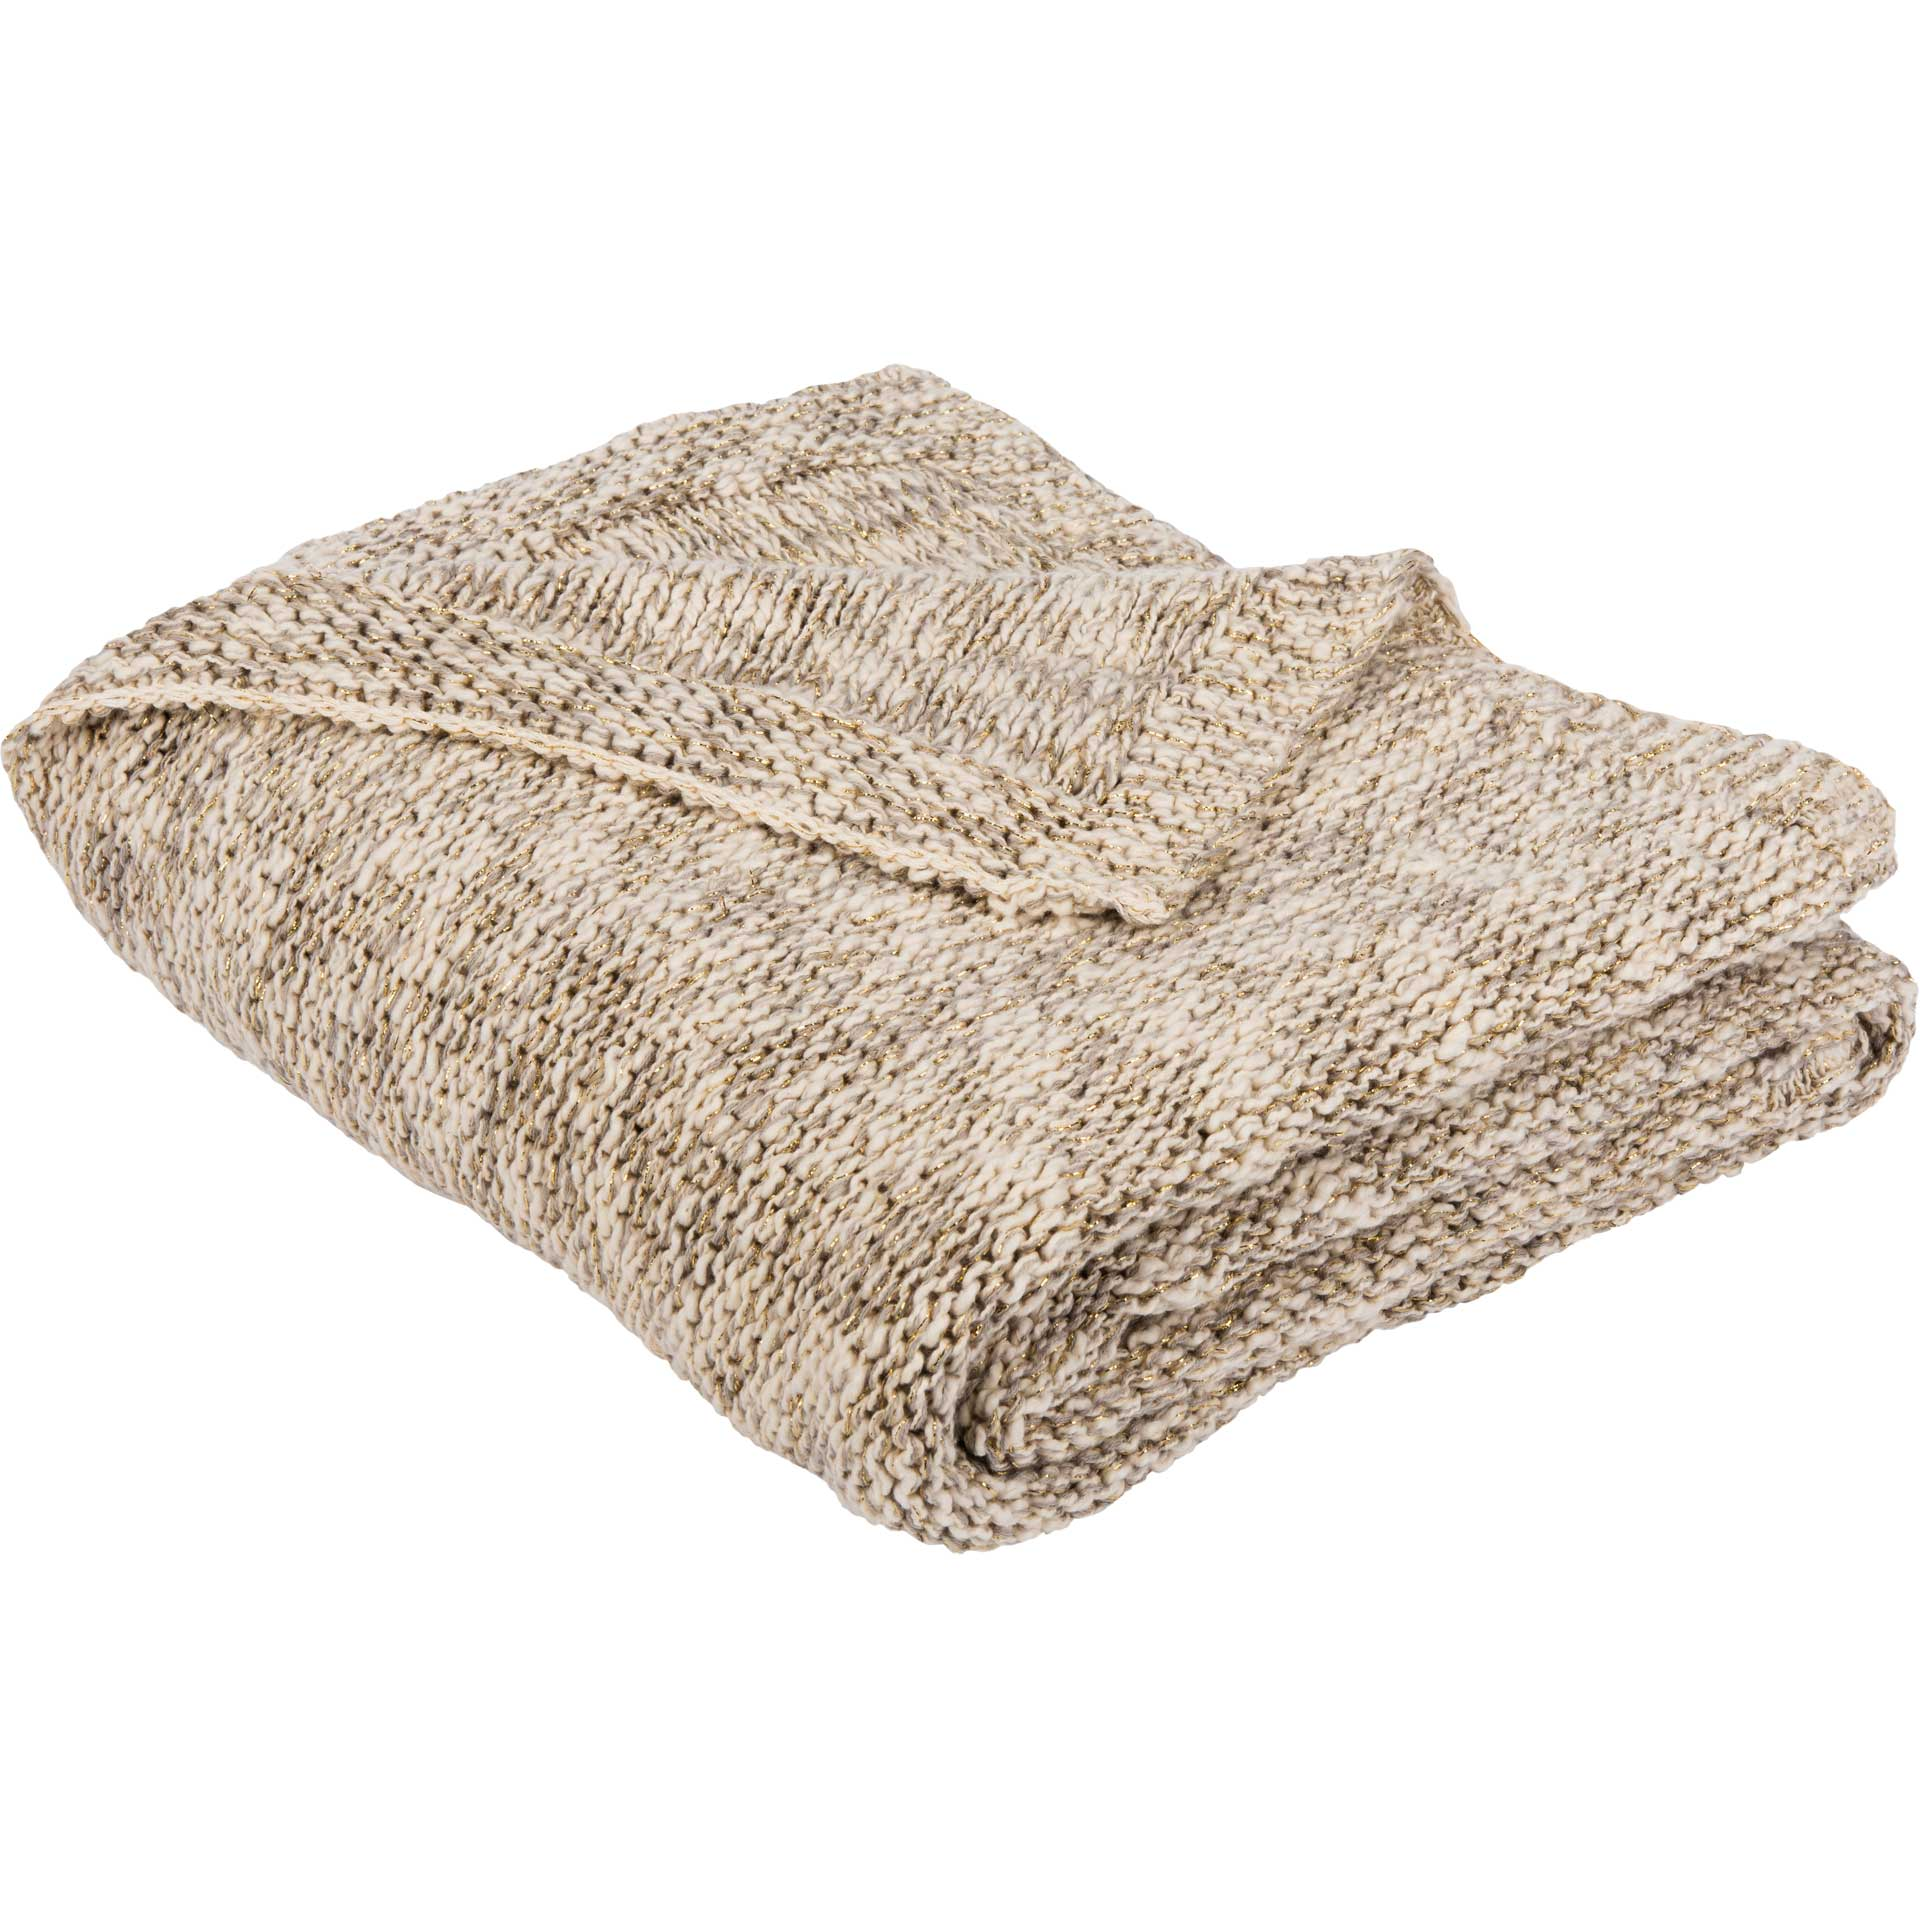 Ranger Knit Throw Light Gray/Natural/Gold